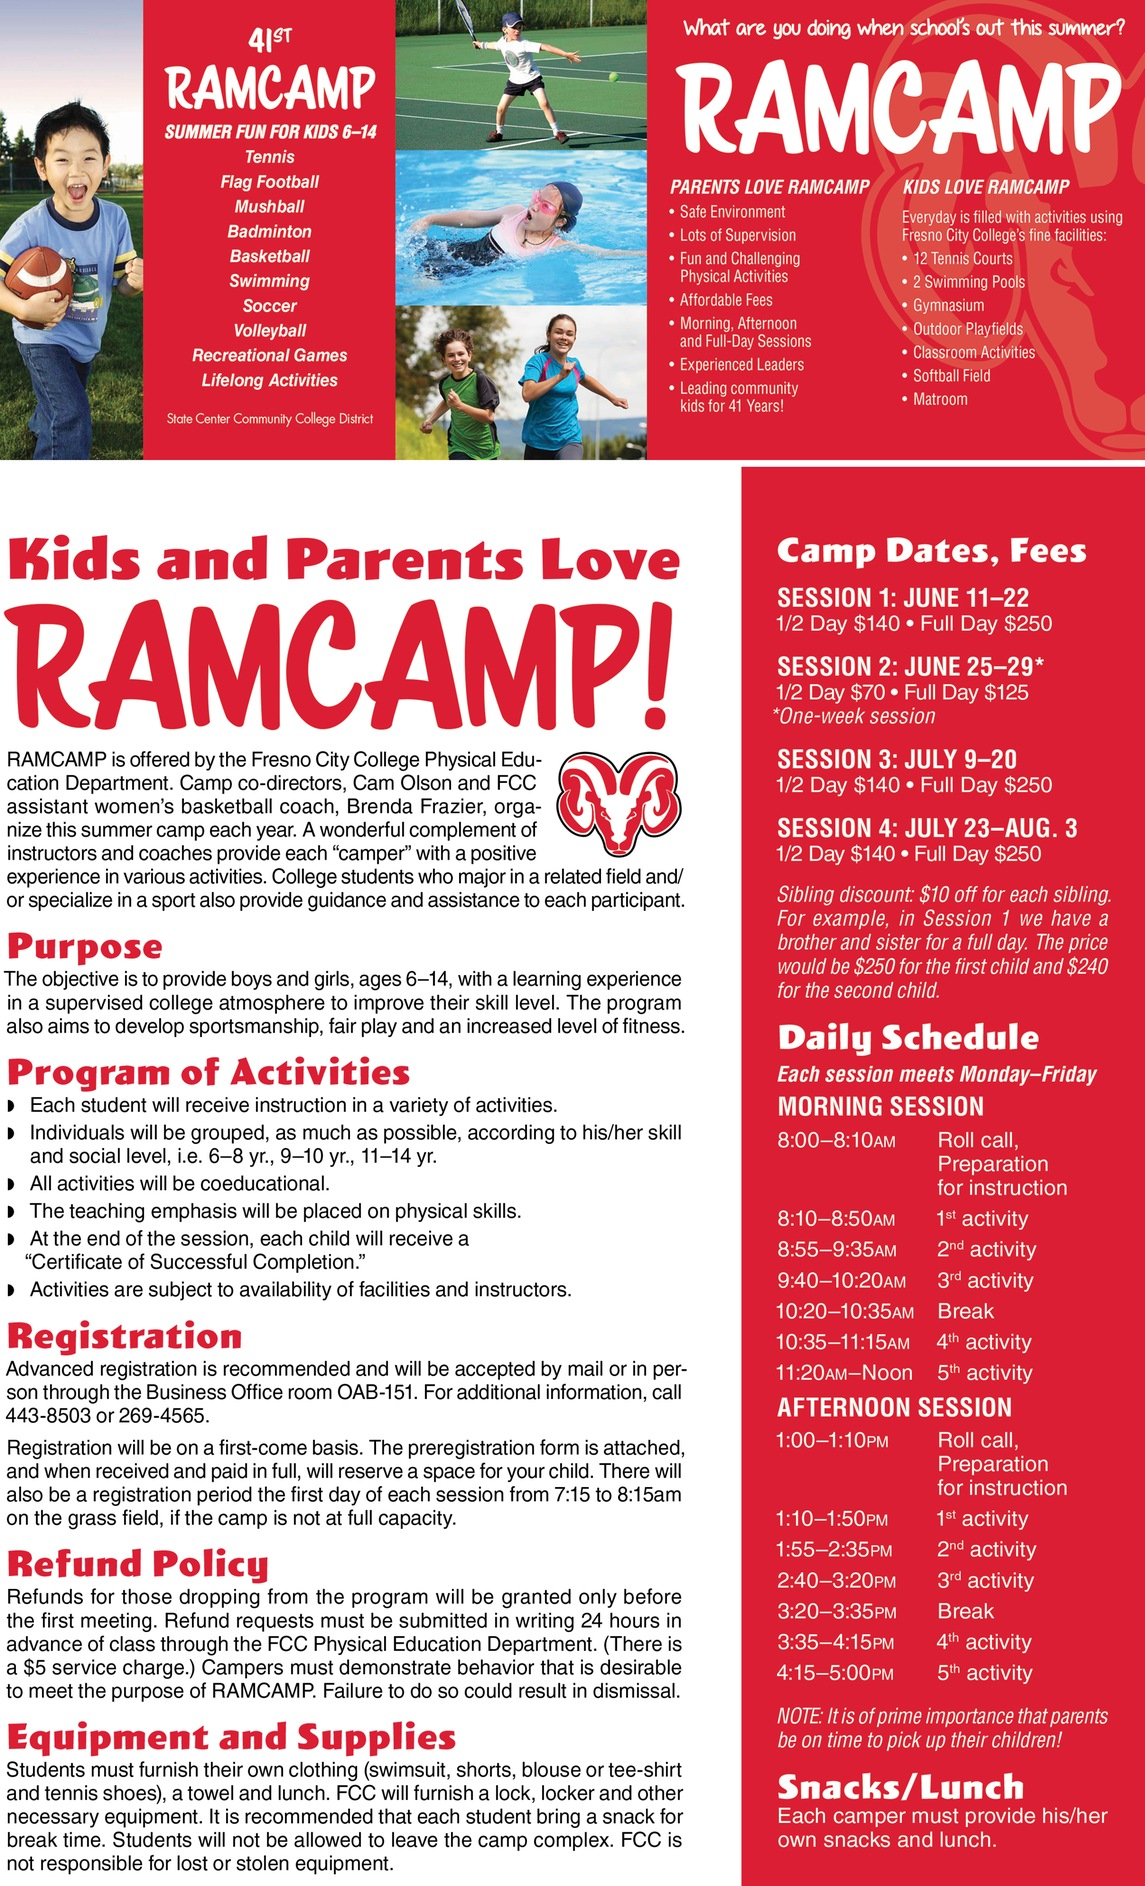 RamCamp information